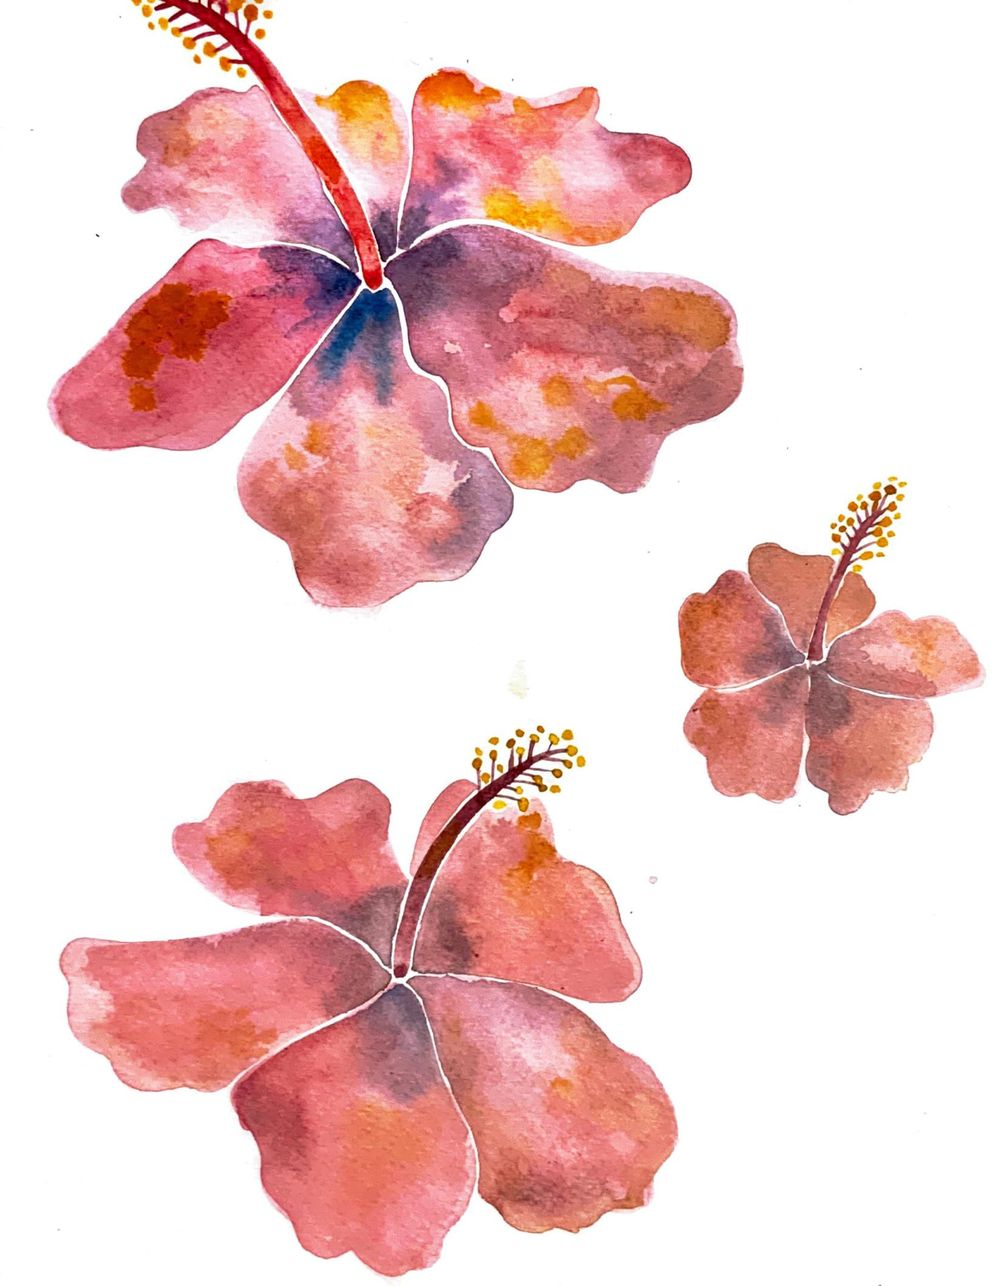 Modern Watercolour Botanicals - image 4 - student project